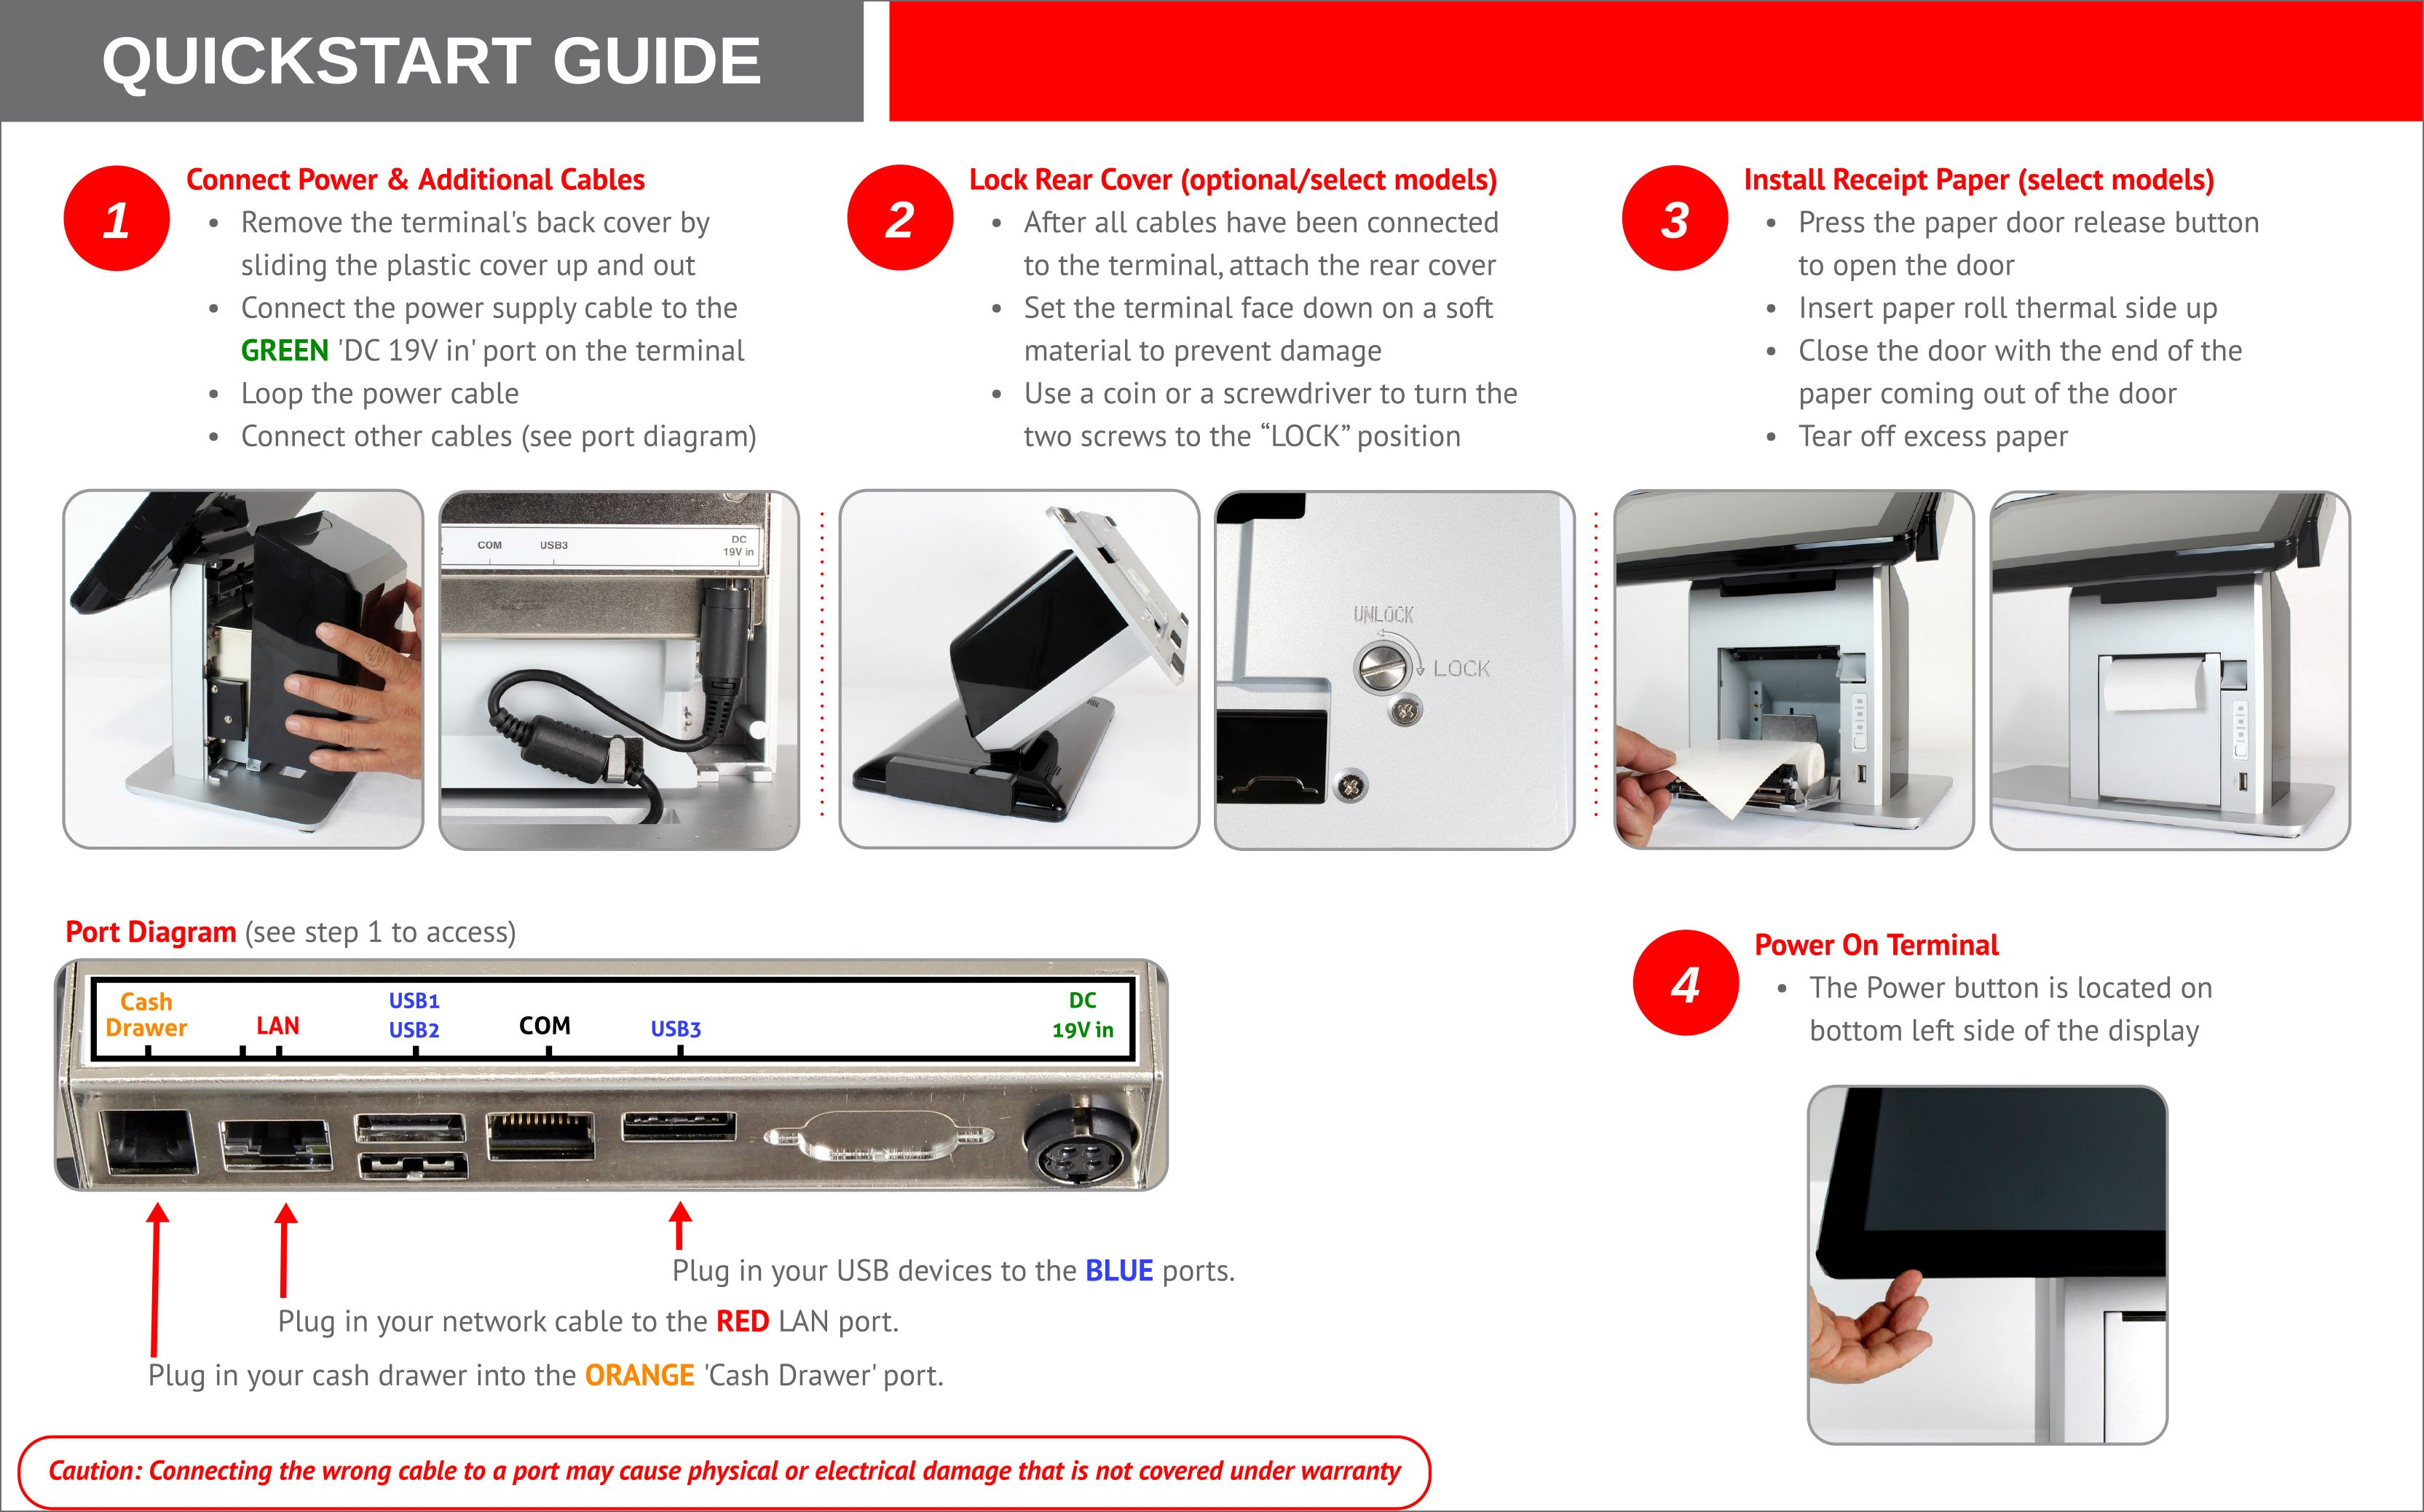 Wash-Dry-Fold POS drop-off laundry point-of-sale system hardware quick setup guide